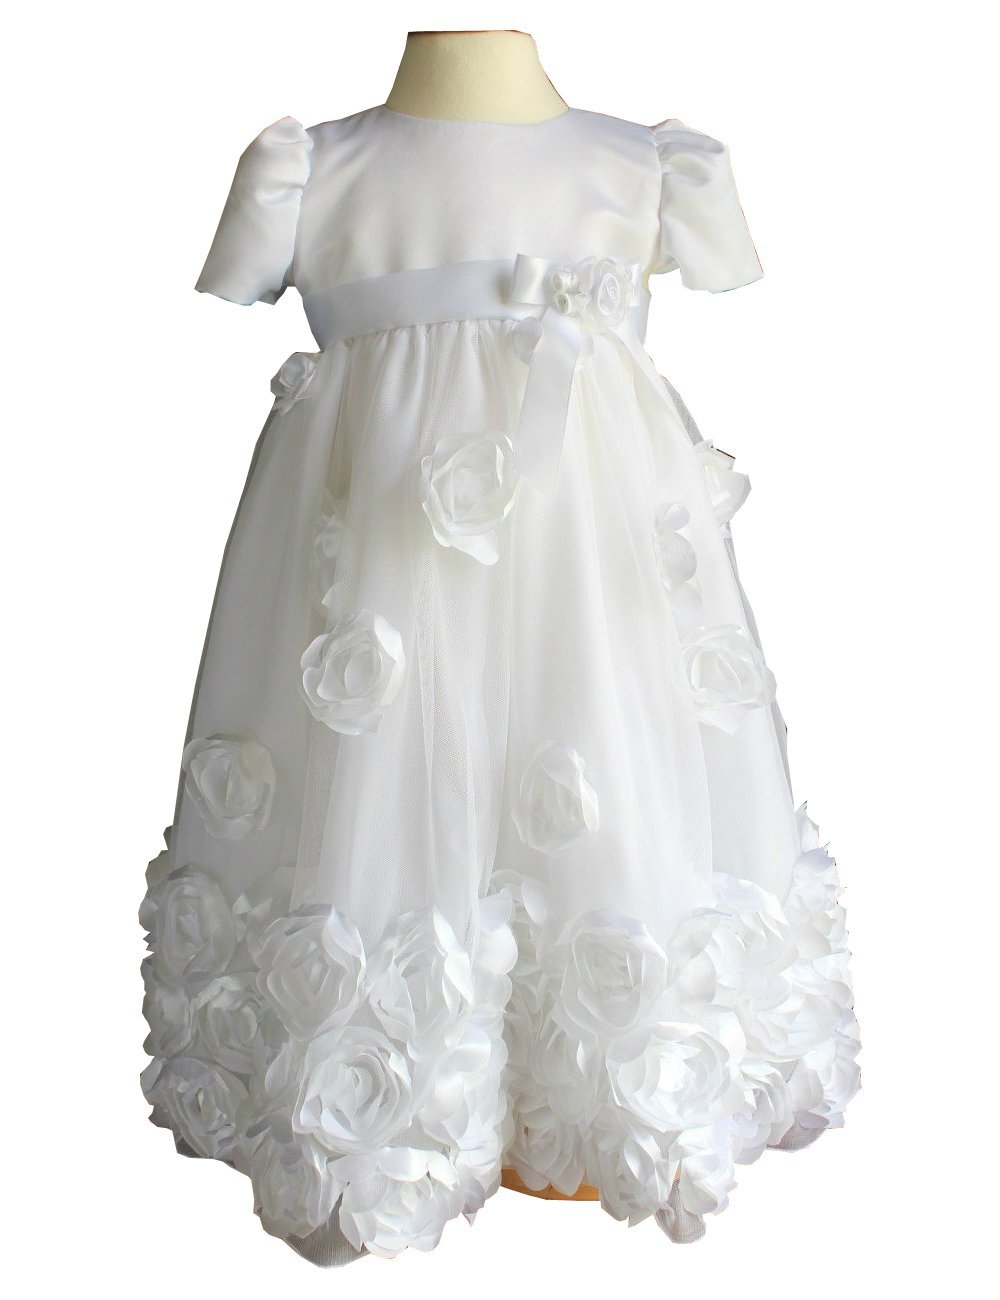 Fenghuavip Round Collar White Baby-Girls Christening Gowns (6-9 Months)